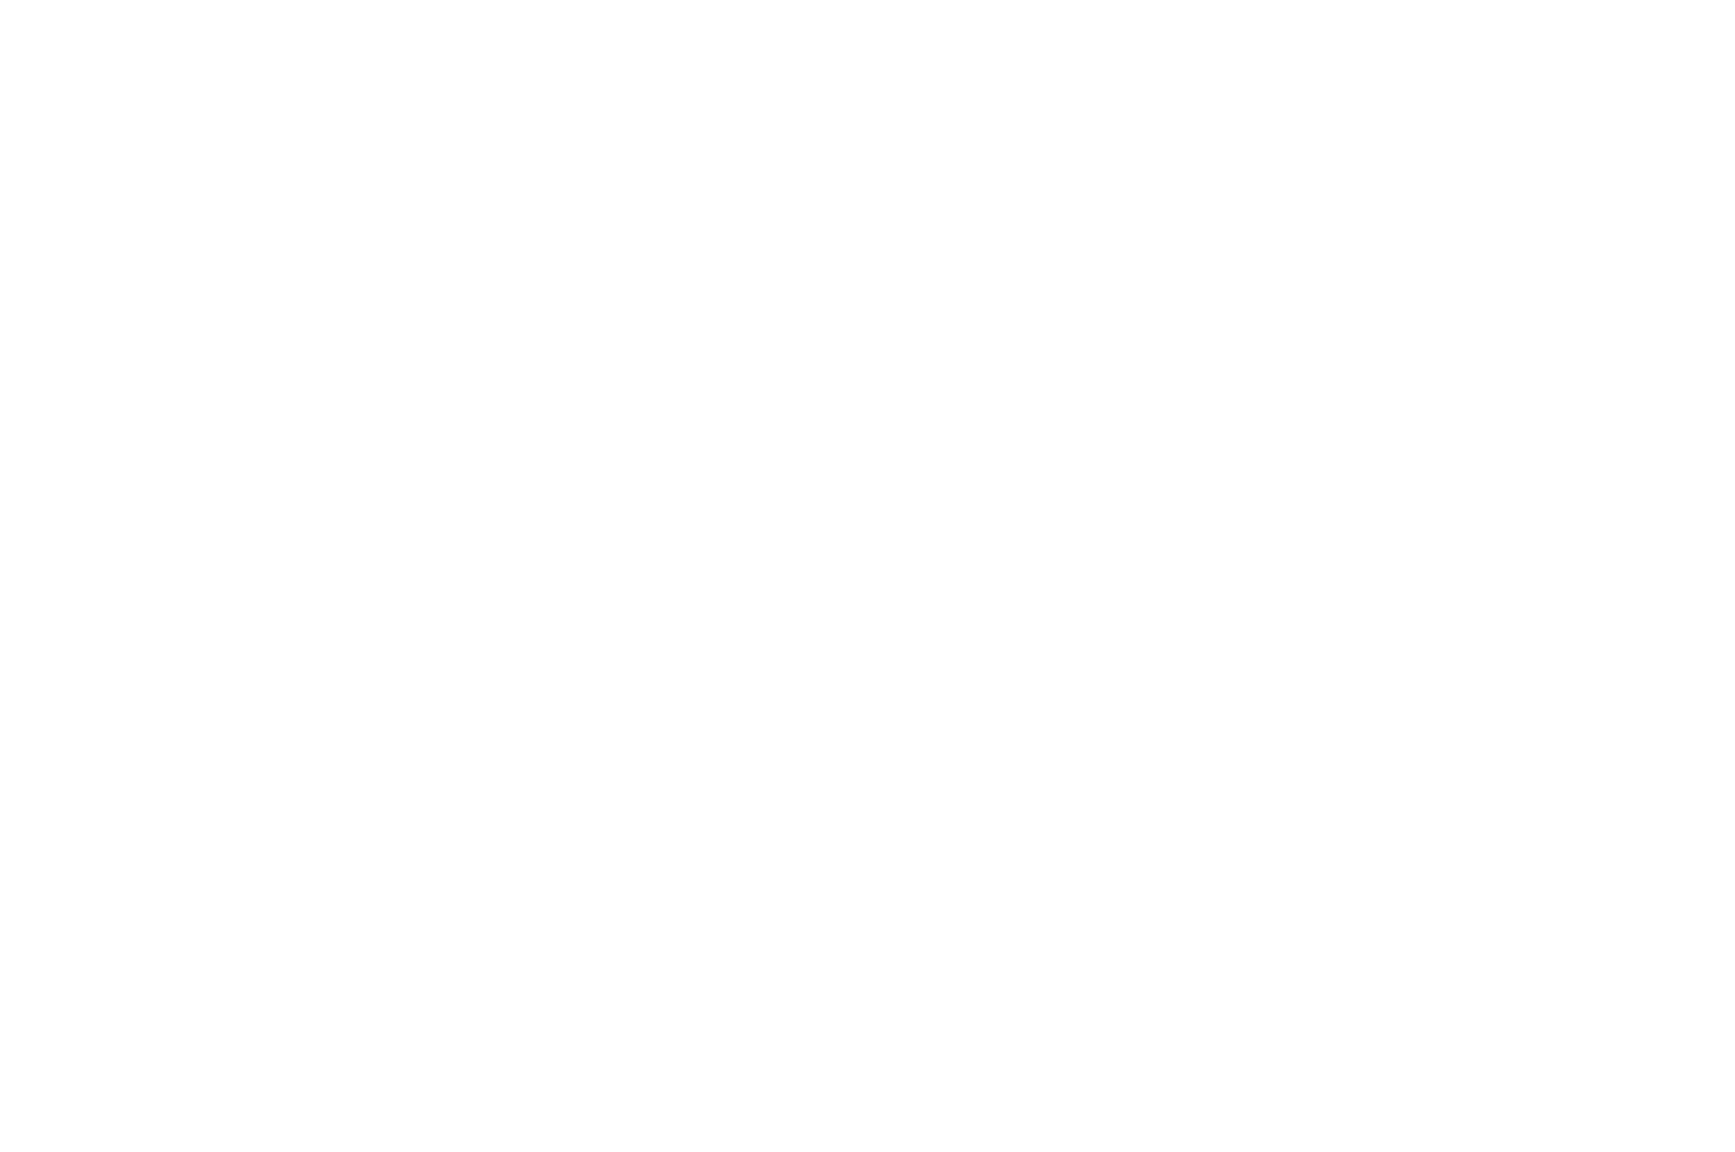 SEMI-FINALIST---Page-Turner-1st-15-Pages-Screenplay-Awards-2020